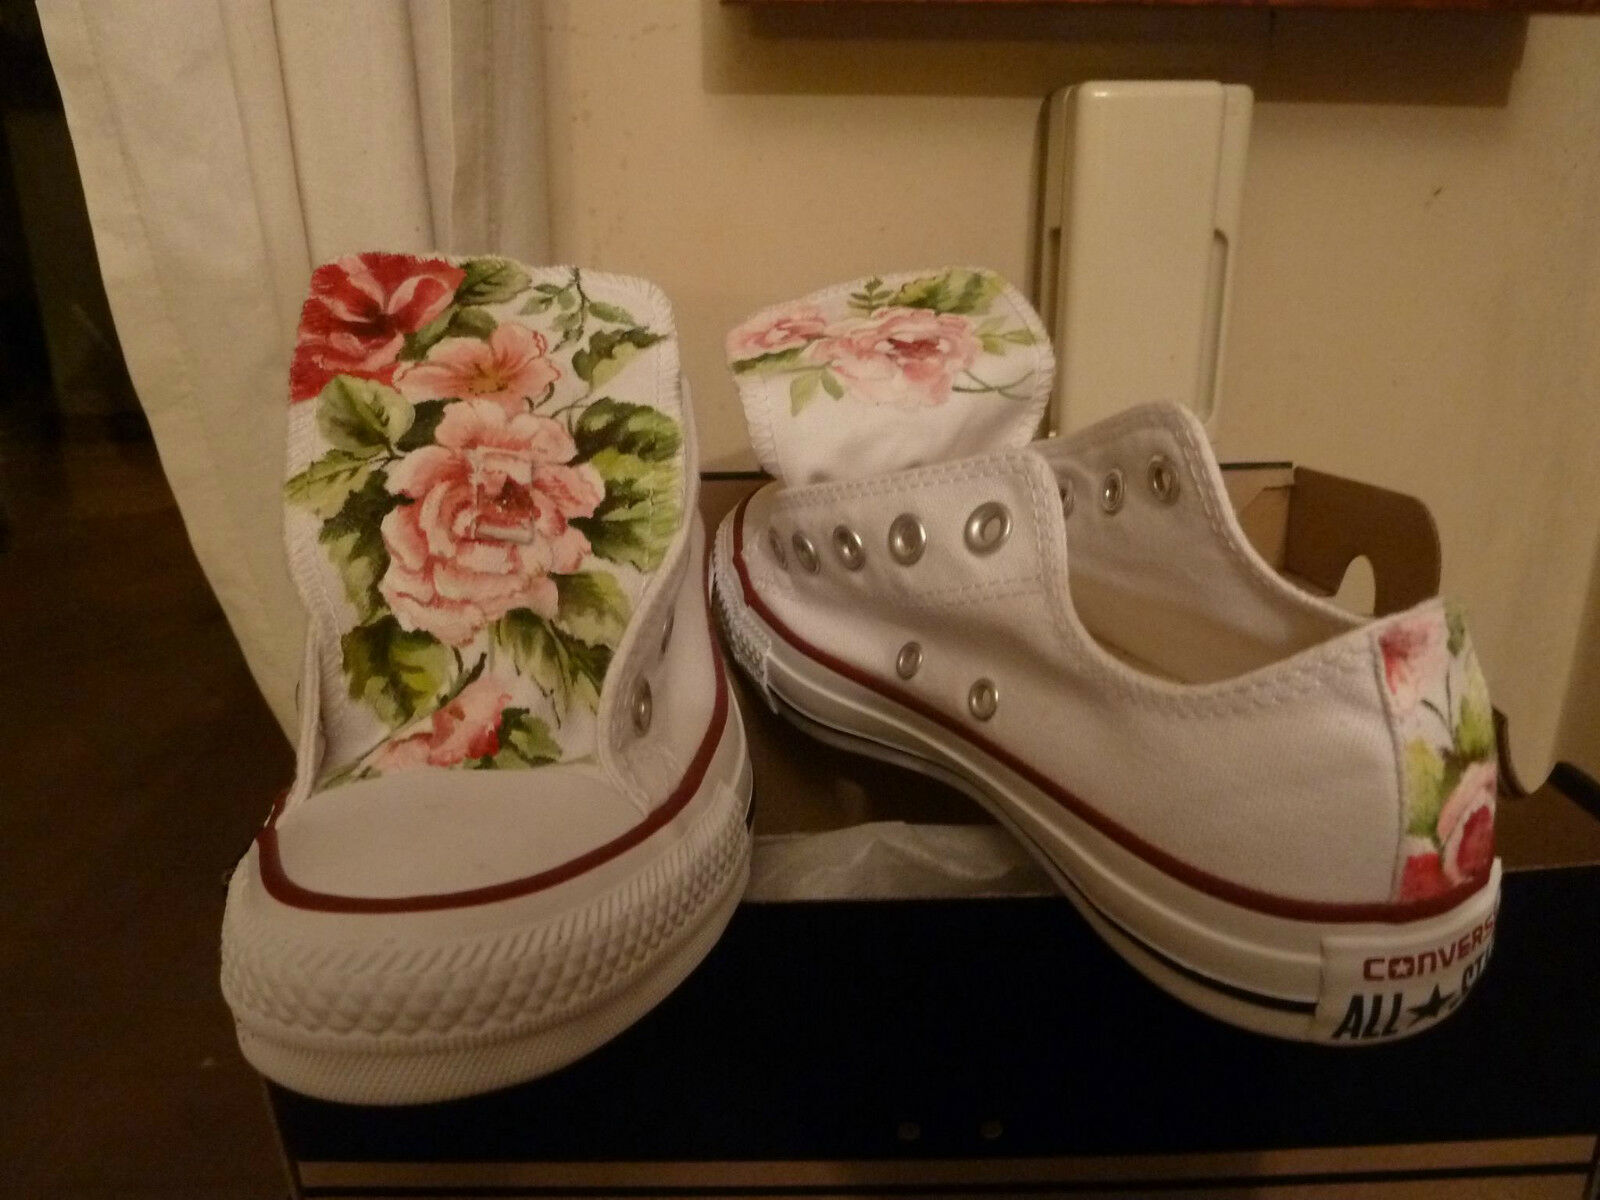 Converse All Star White Low White Low Floral Flowers Rose Flowers HANDMADE